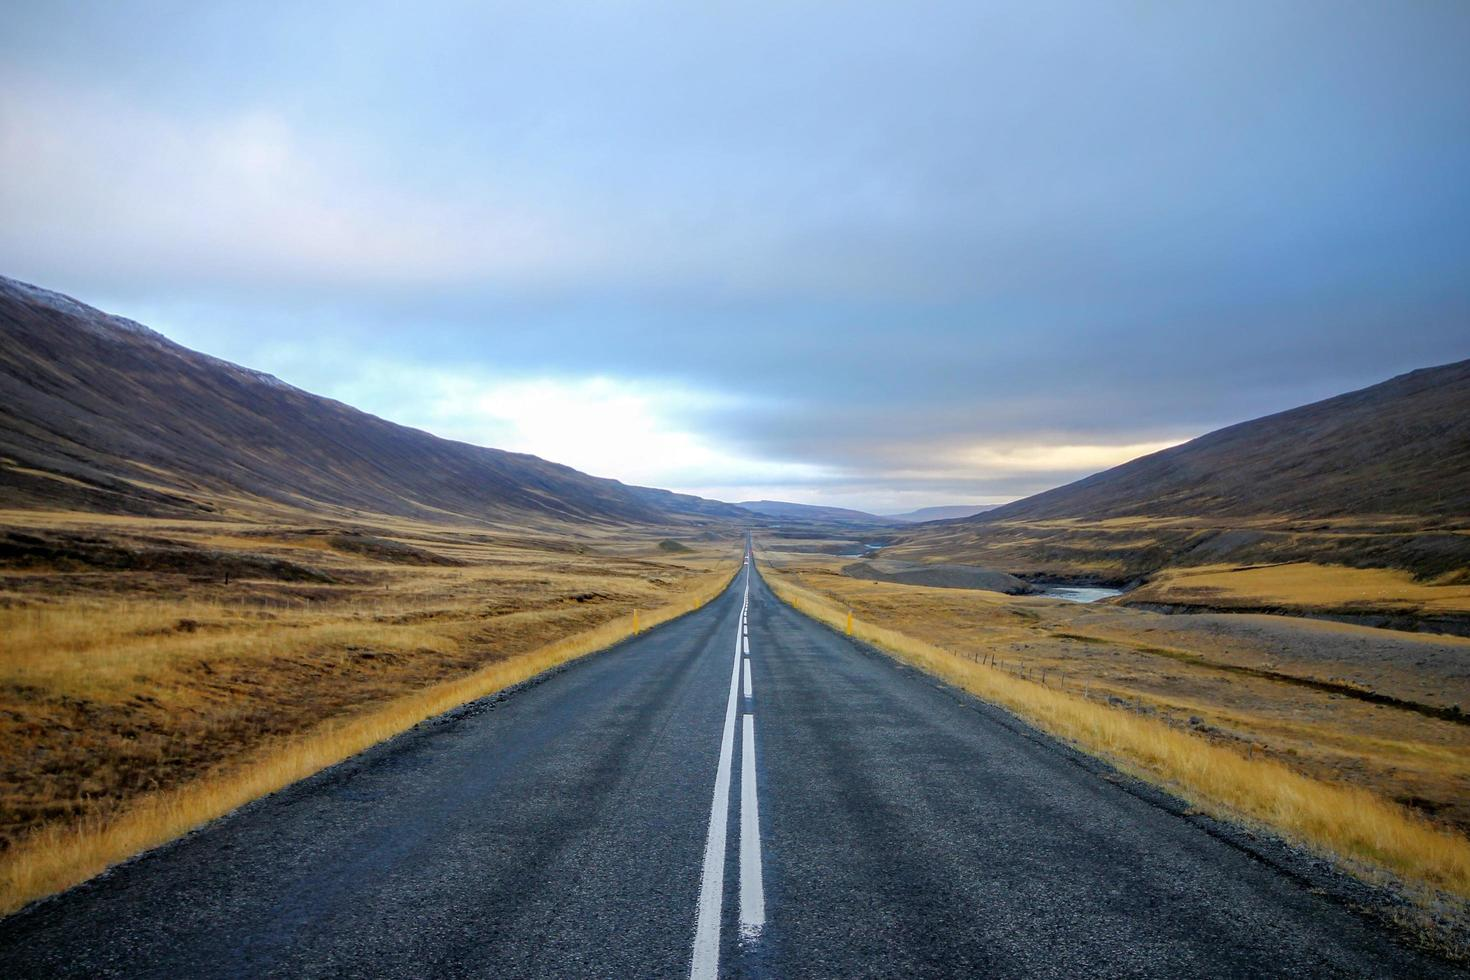 Road running through a hilly landscape photo